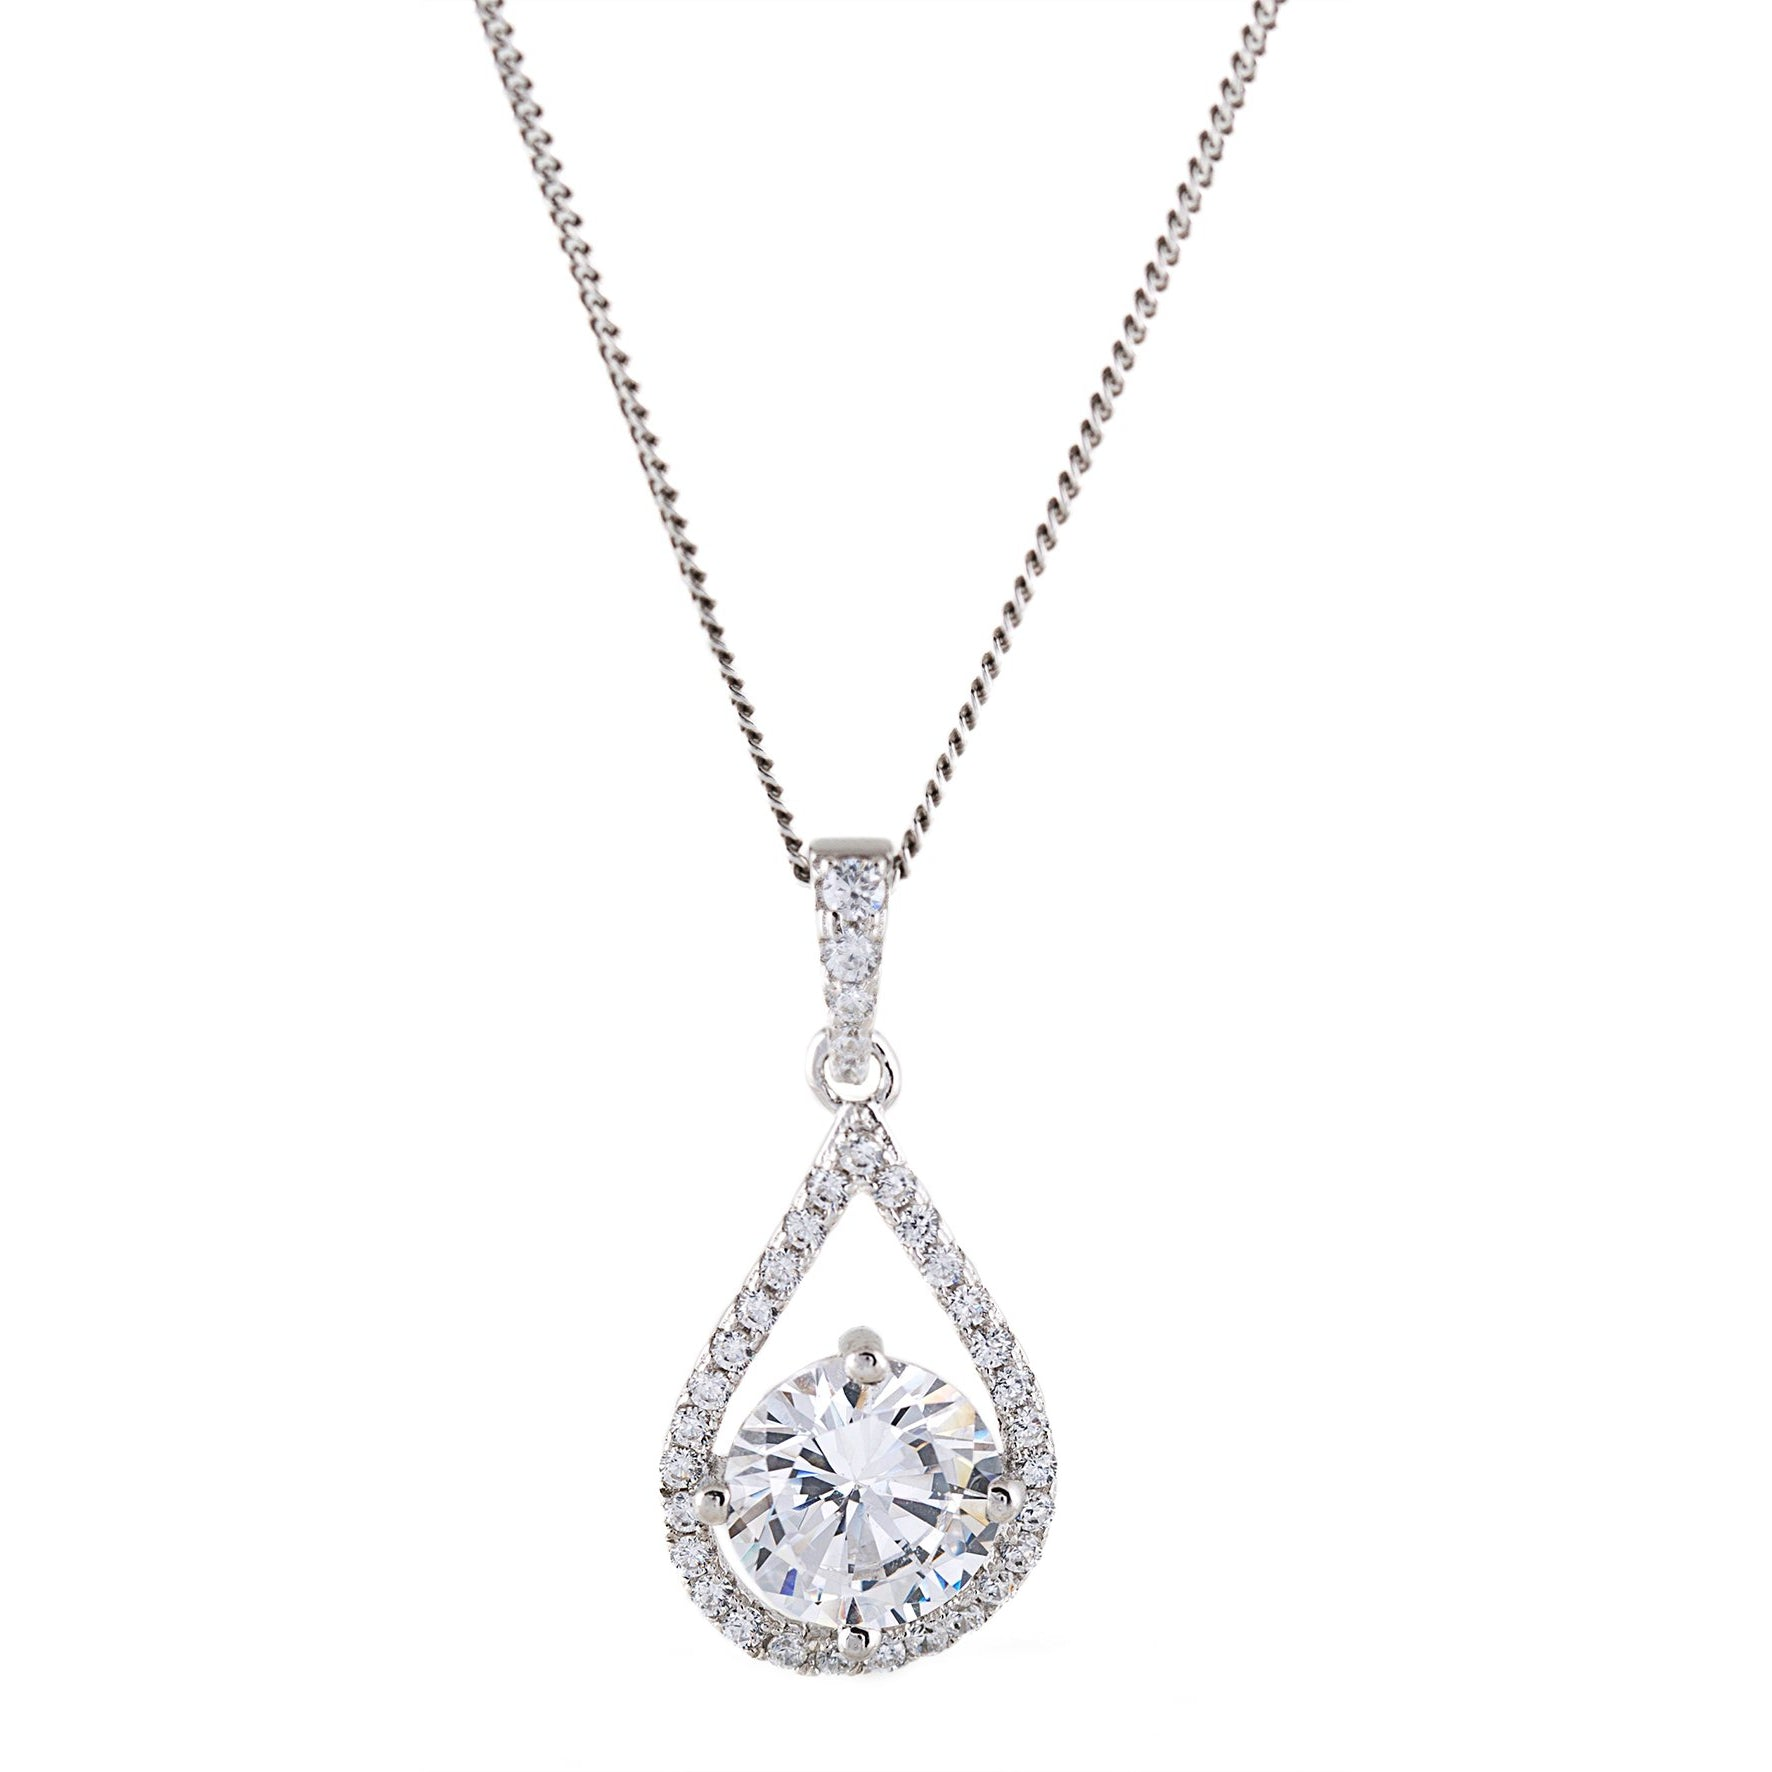 Sterling Silver Tear Drop Pendant Necklace by Infinity Prestige Jewel Collection